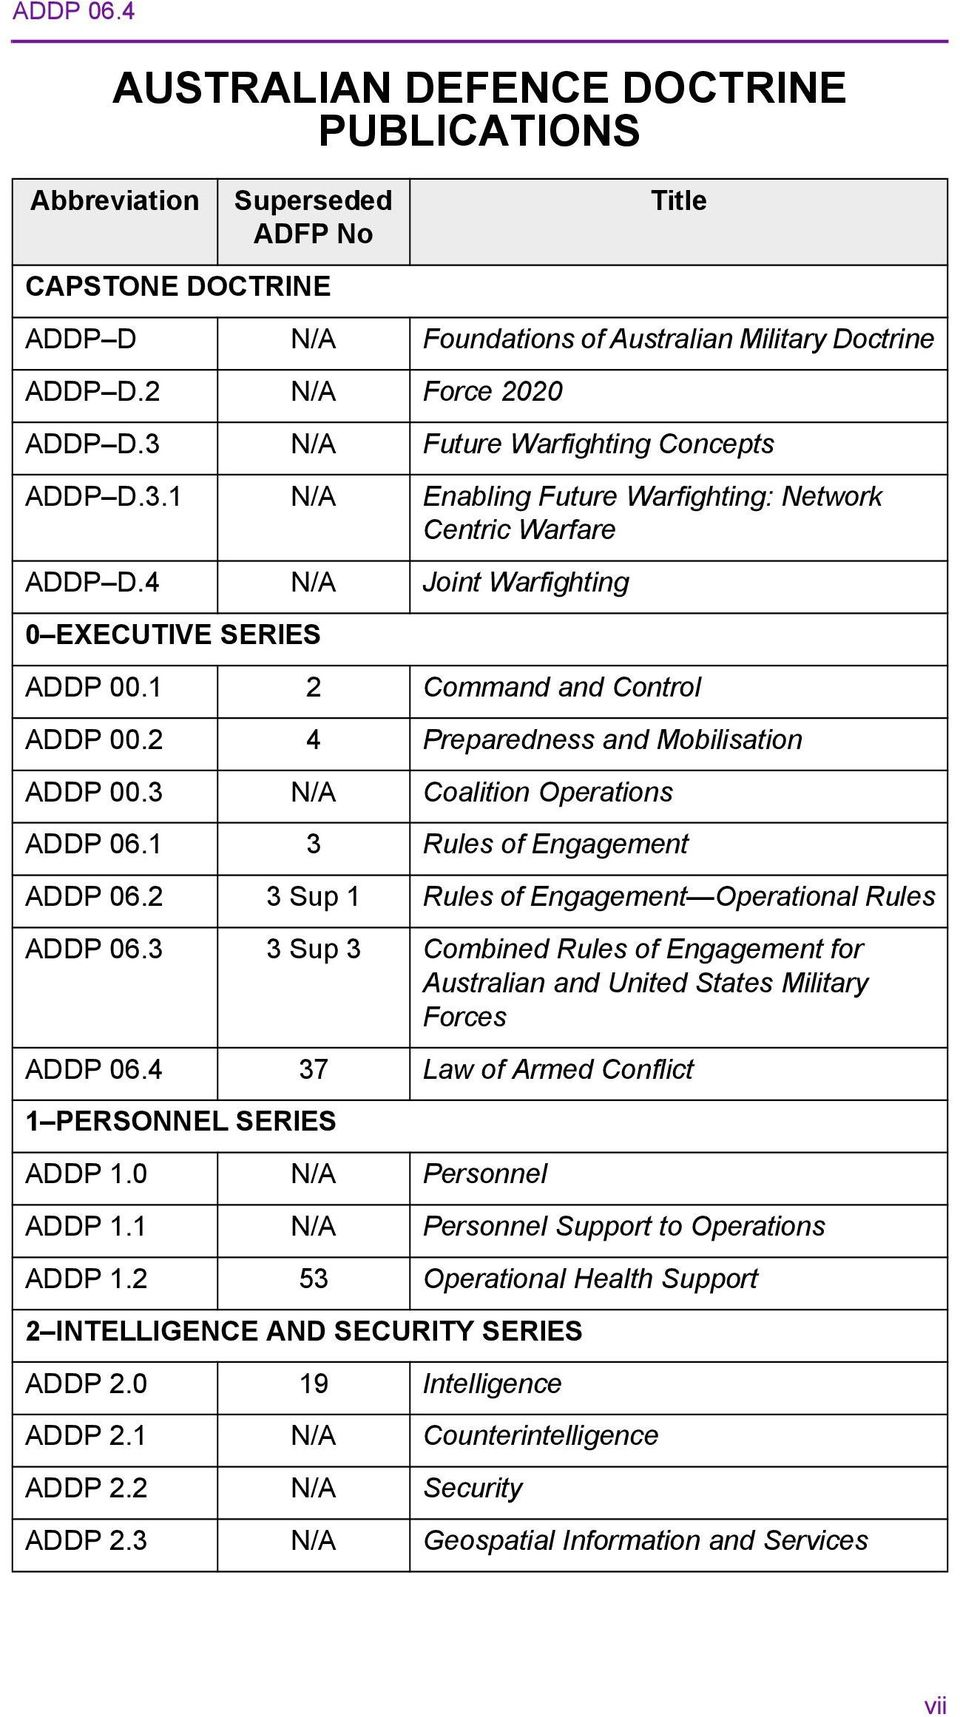 2 4 Preparedness and Mobilisation ADDP 00.3 N/A Coalition Operations ADDP 06.1 3 Rules of Engagement ADDP 06.2 3 Sup 1 Rules of Engagement Operational Rules ADDP 06.